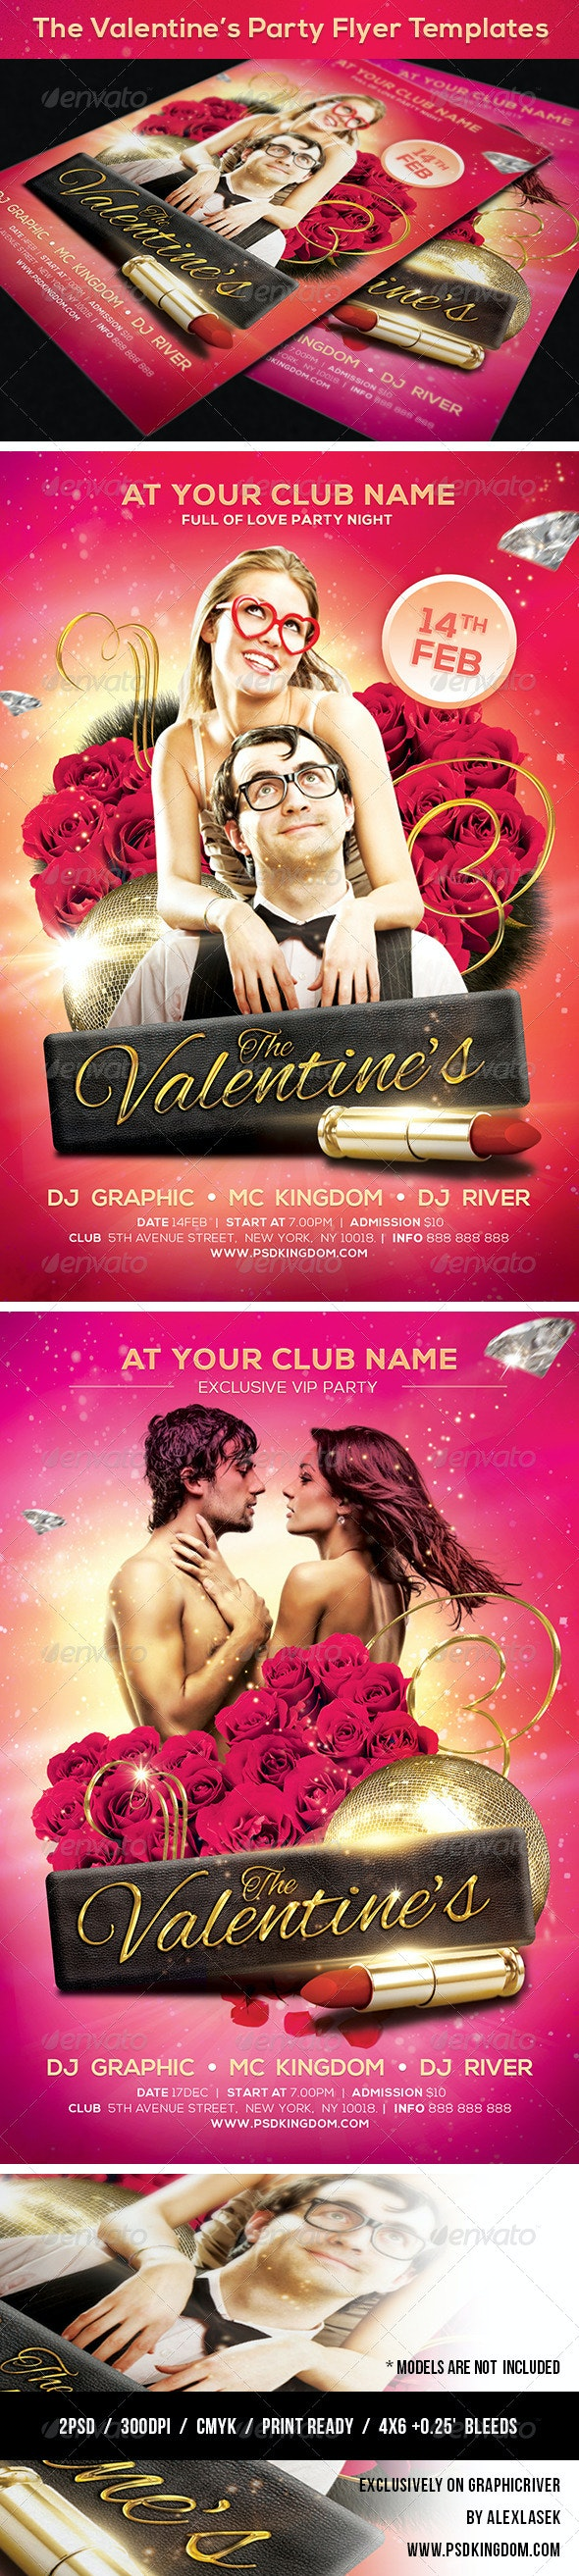 Valentine's Party Flyer Templates 4x6 - Clubs & Parties Events